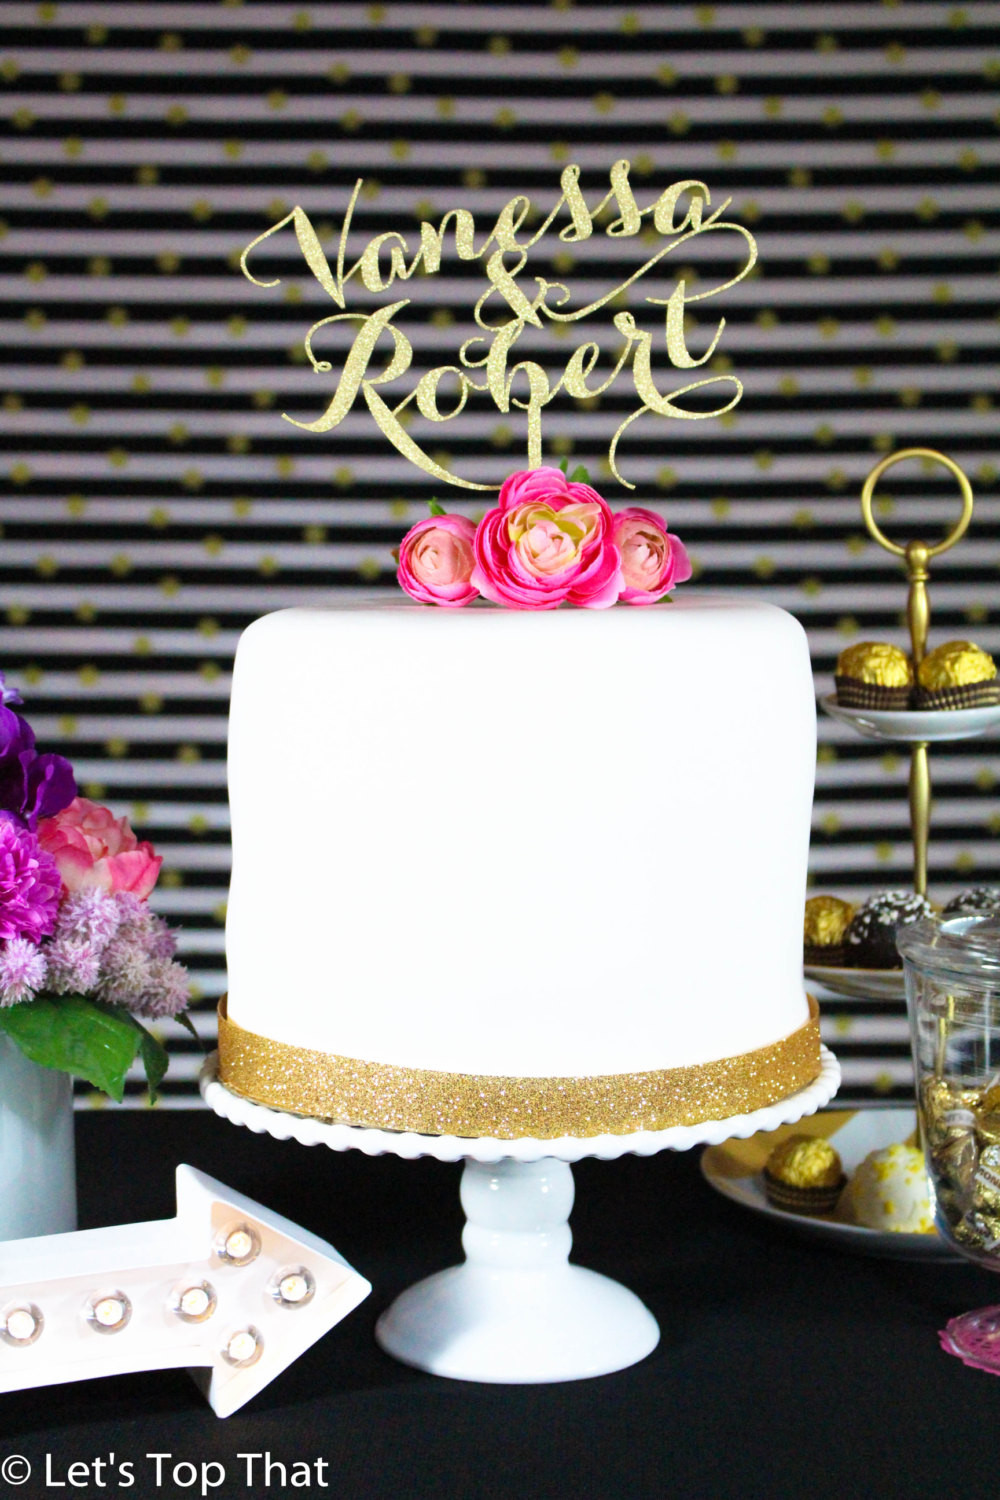 Personalized Cake Toppers For Wedding Cakes  Custom Cake Topper Wedding Cake Topper Personalized Cake